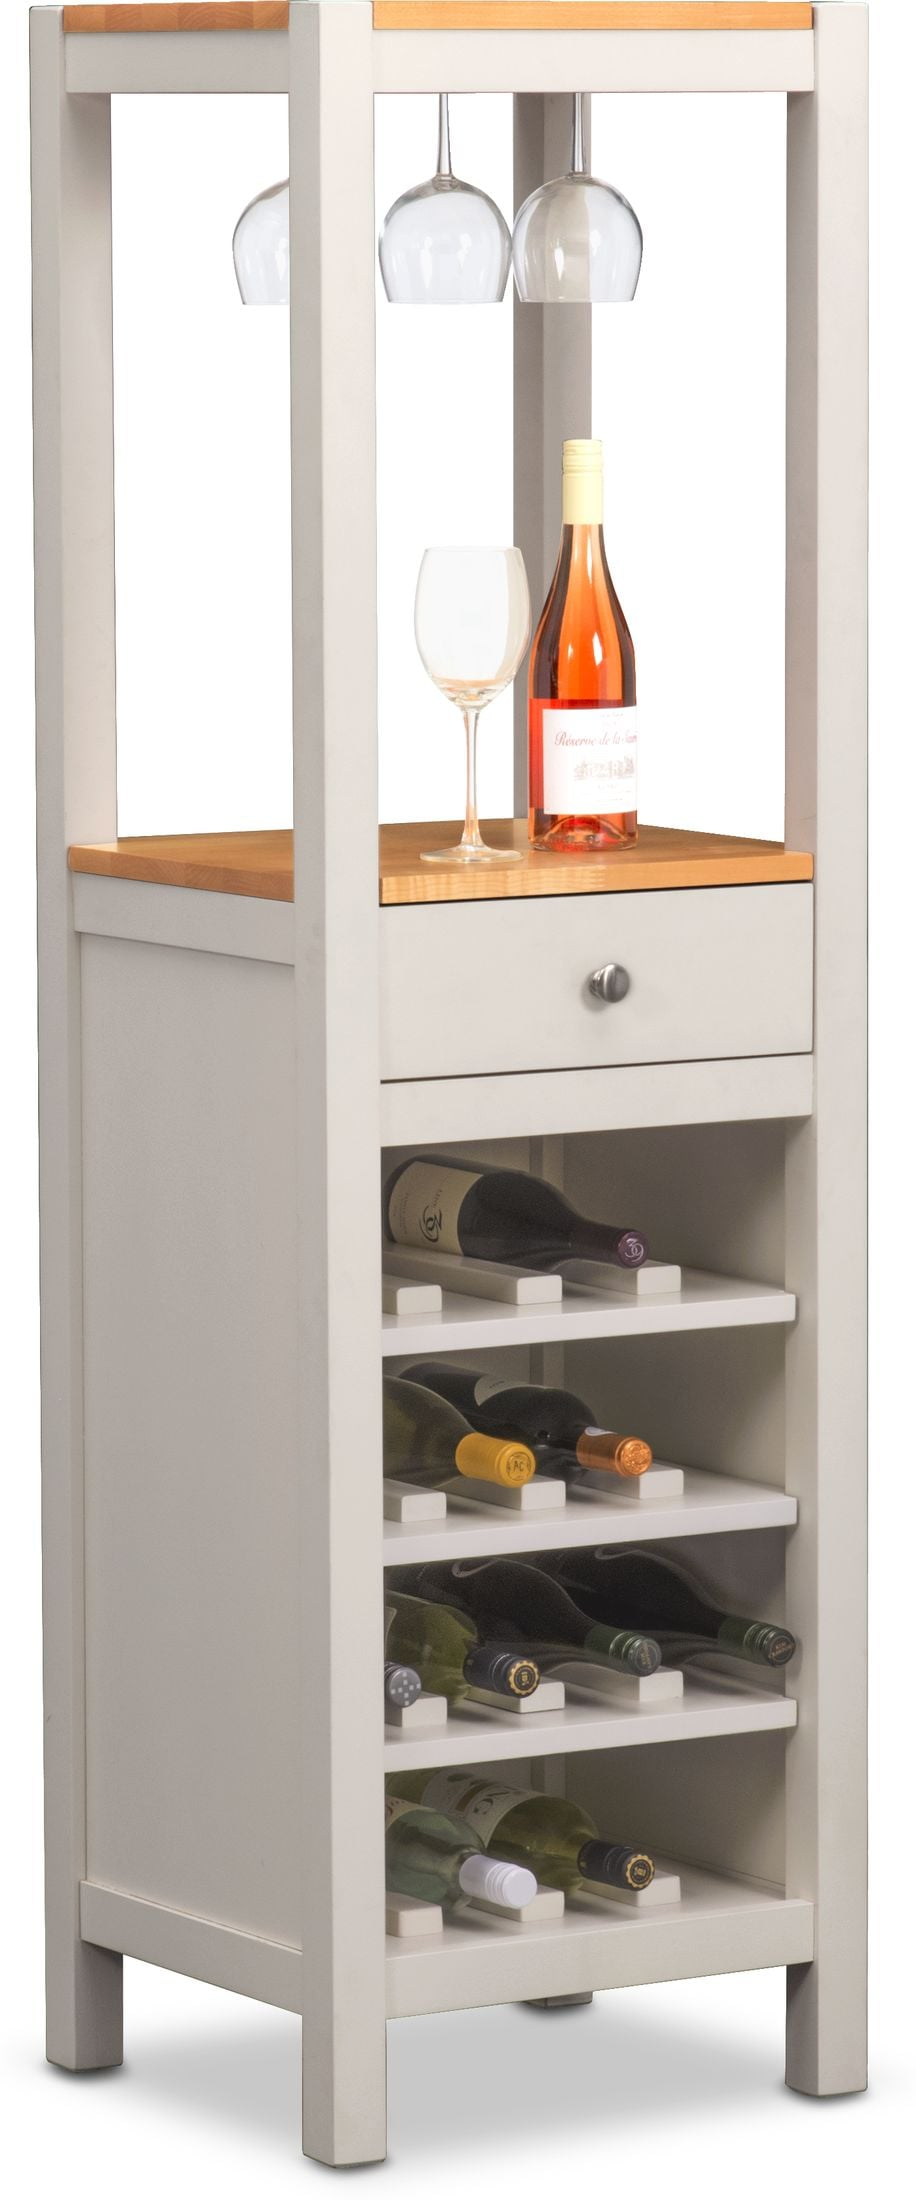 Dining Room Furniture - Nantucket Wine Cabinet - Maple and White